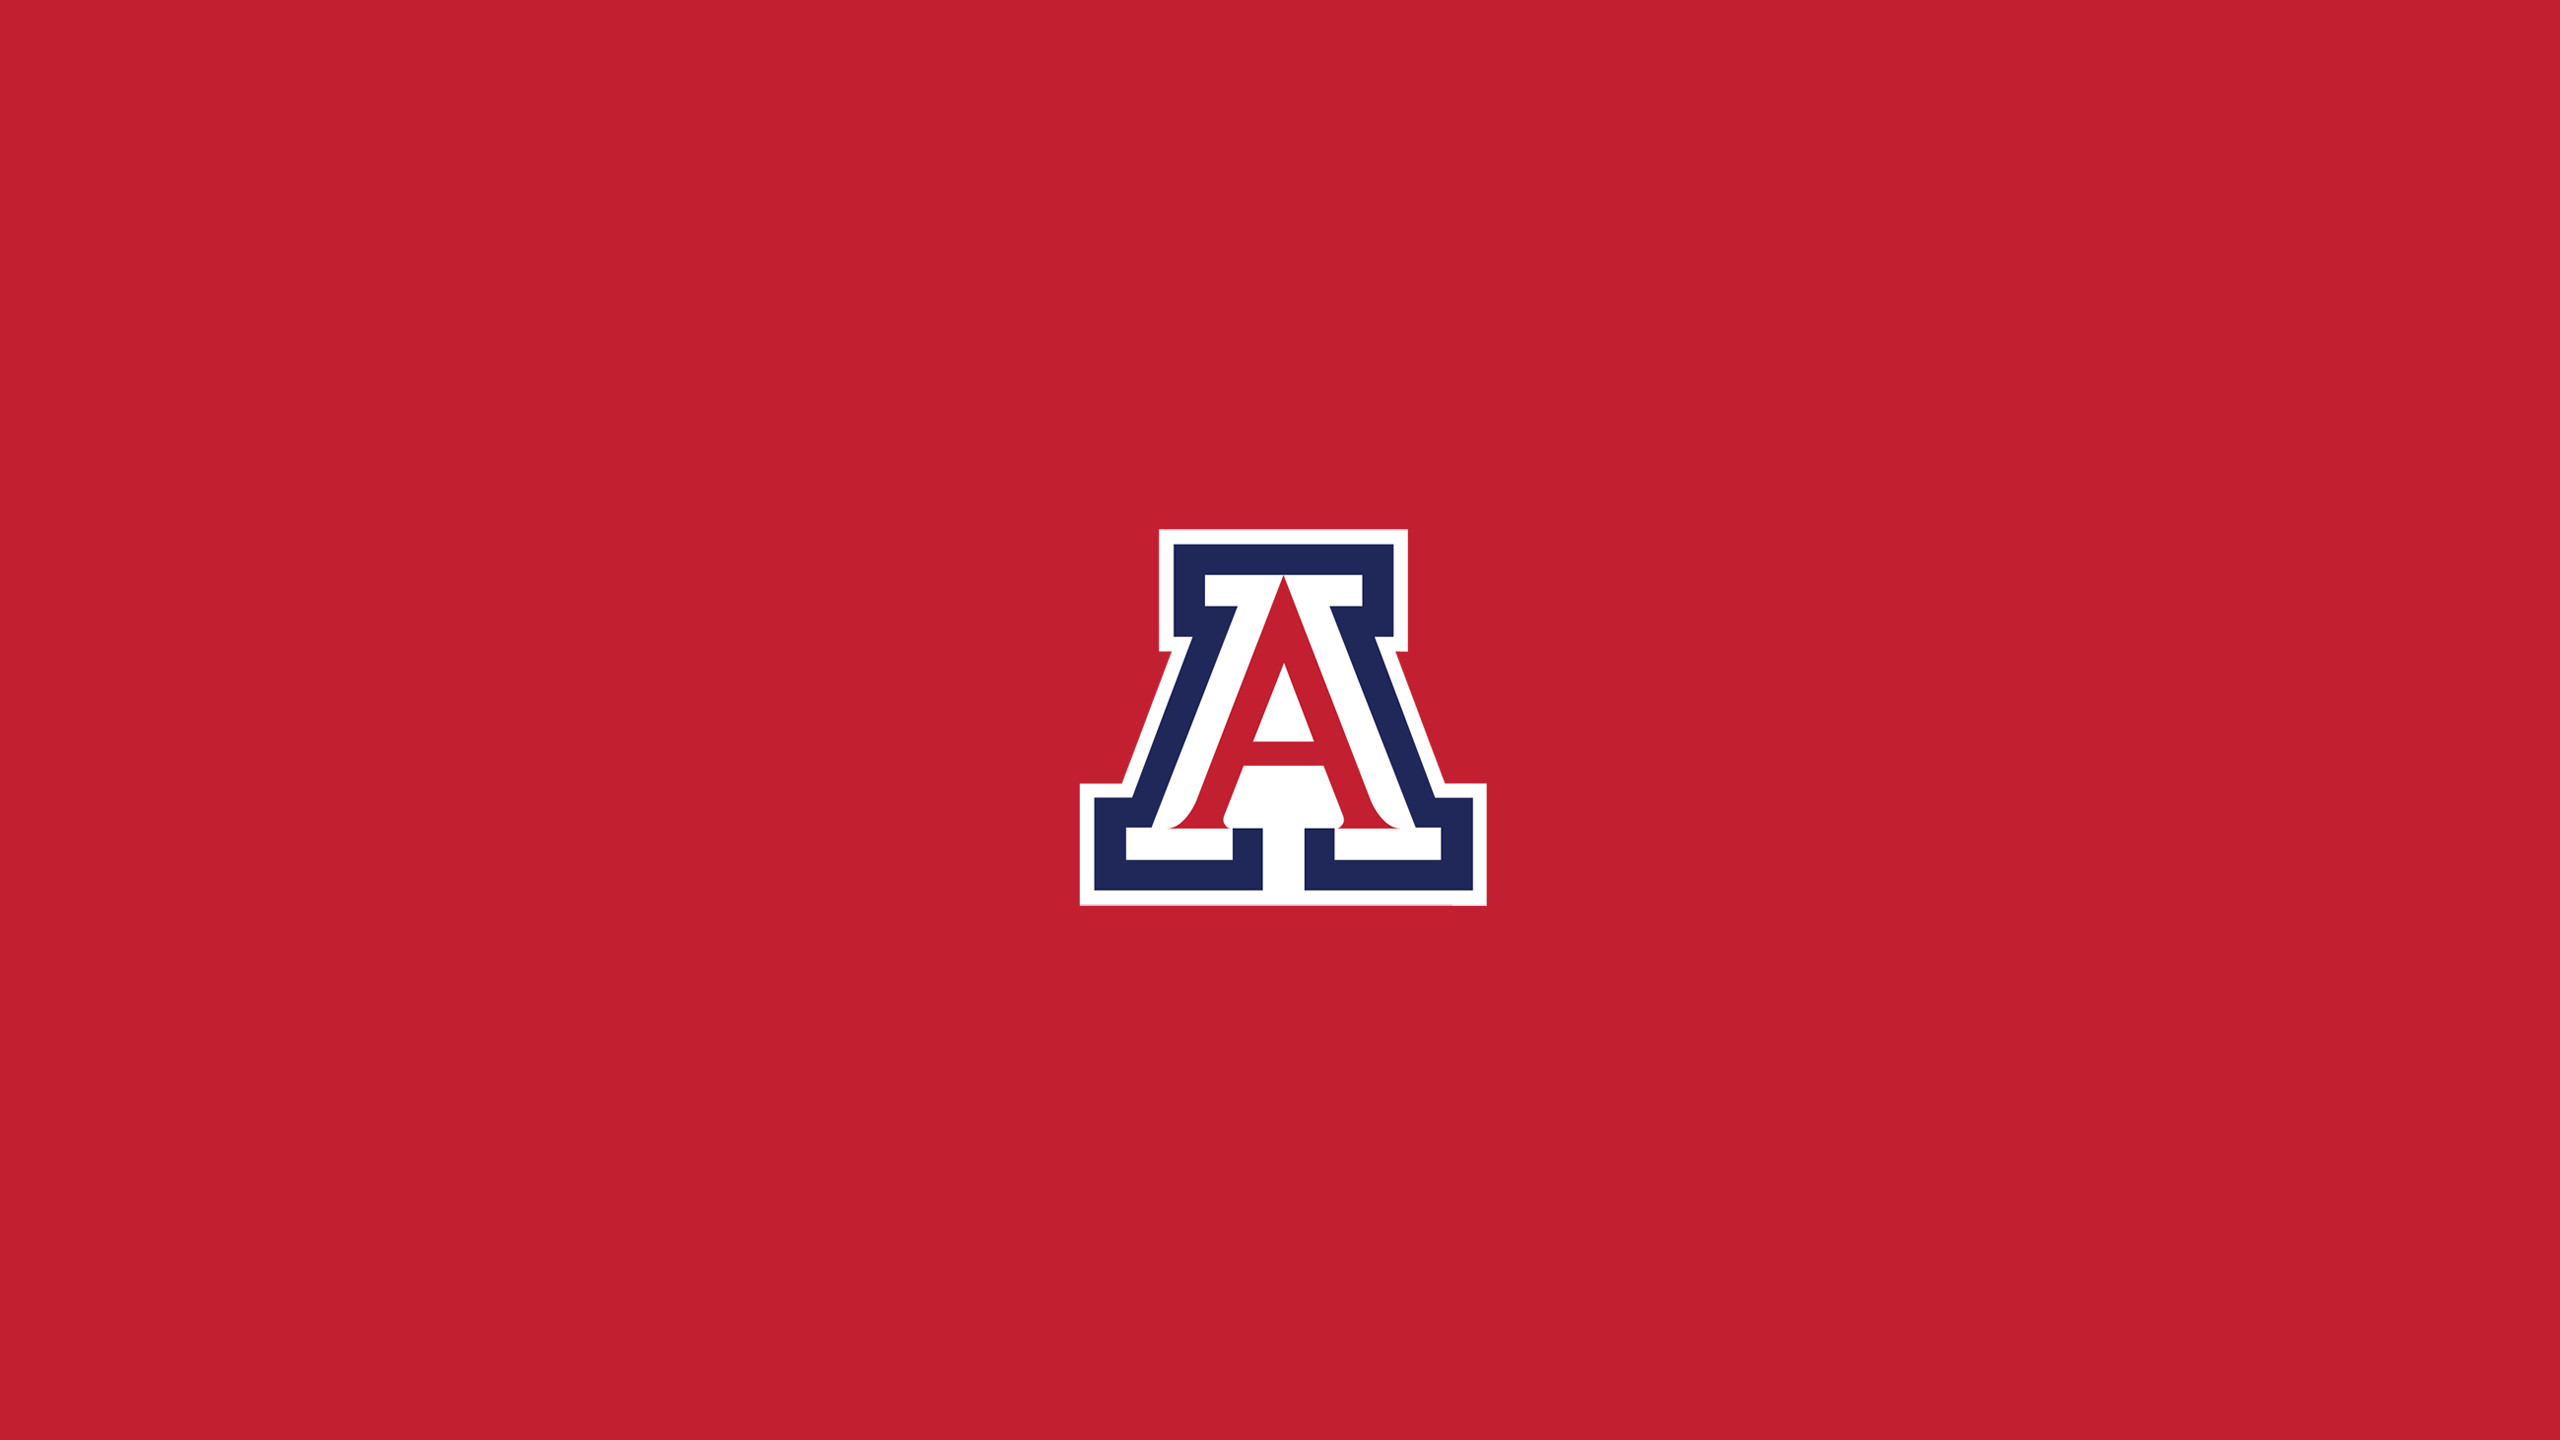 University Of Arizona Wildcats Logo Wallpaper Background 62471